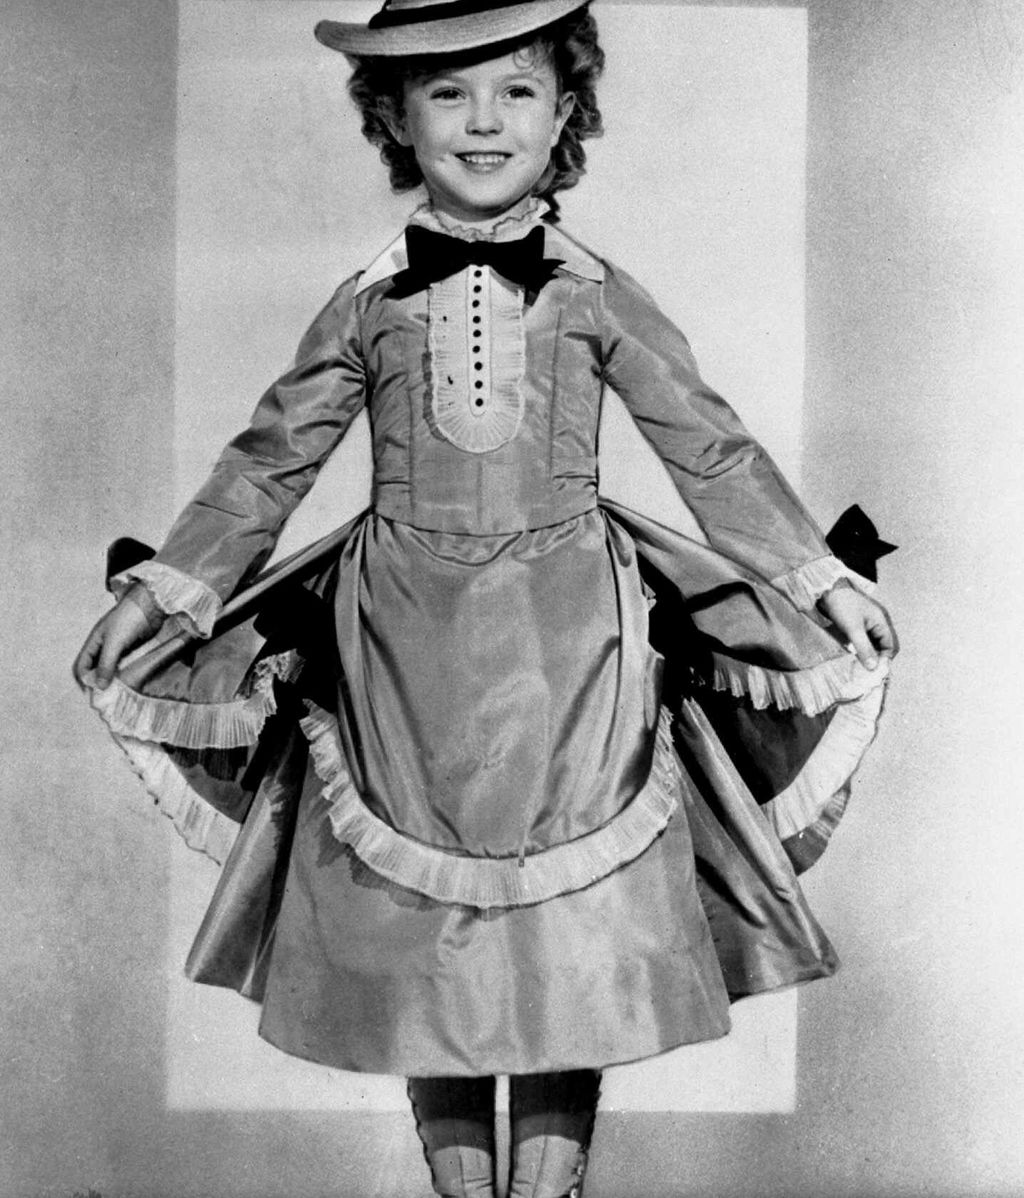 Shirley Temple en un fotograma de la película The Little Colonel